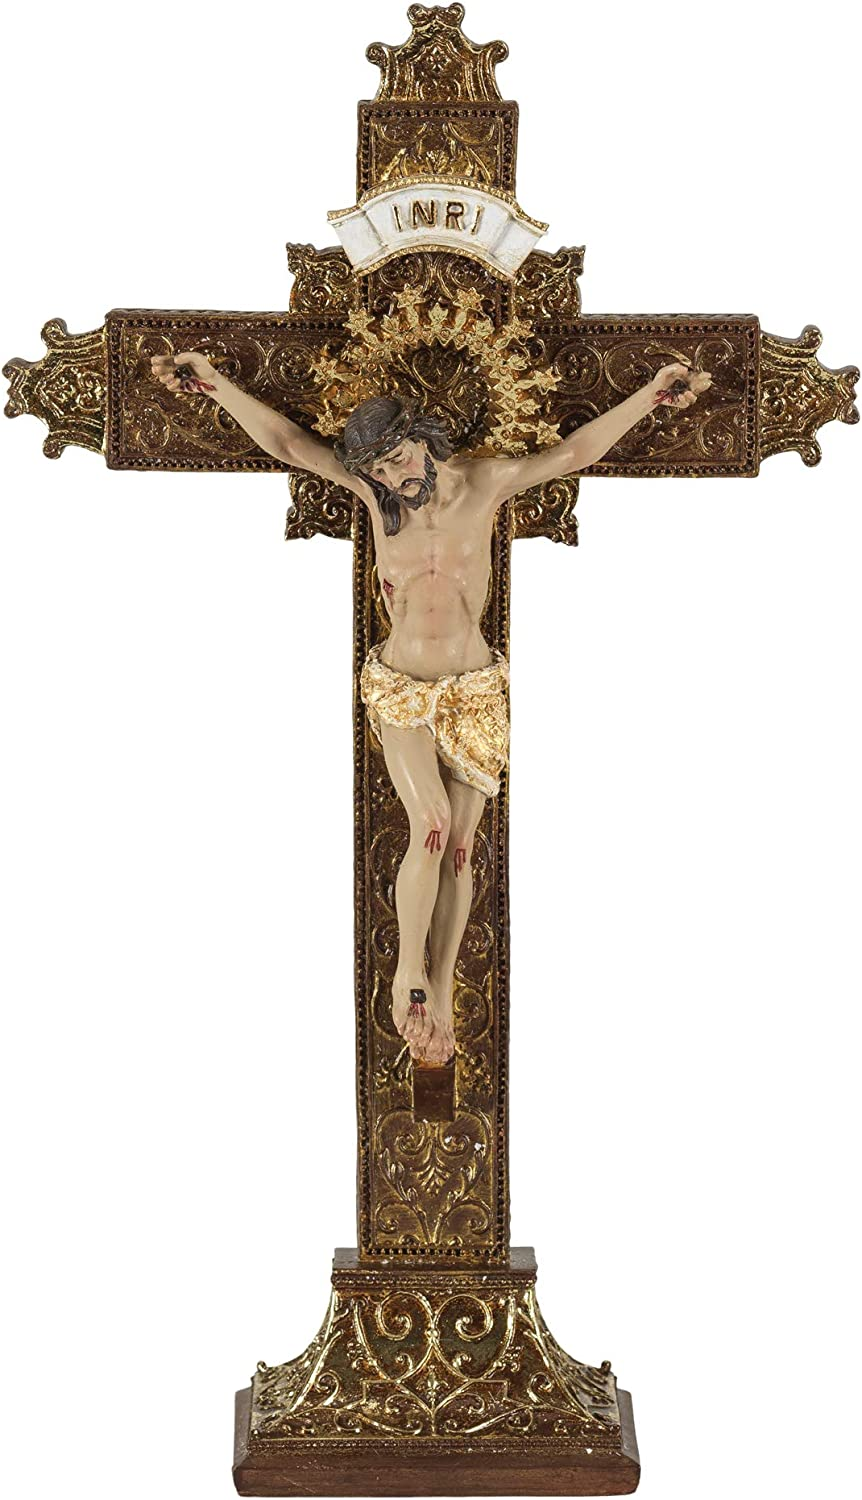 12 High Dicksons Resin Tabletop Cross with Brown Finish